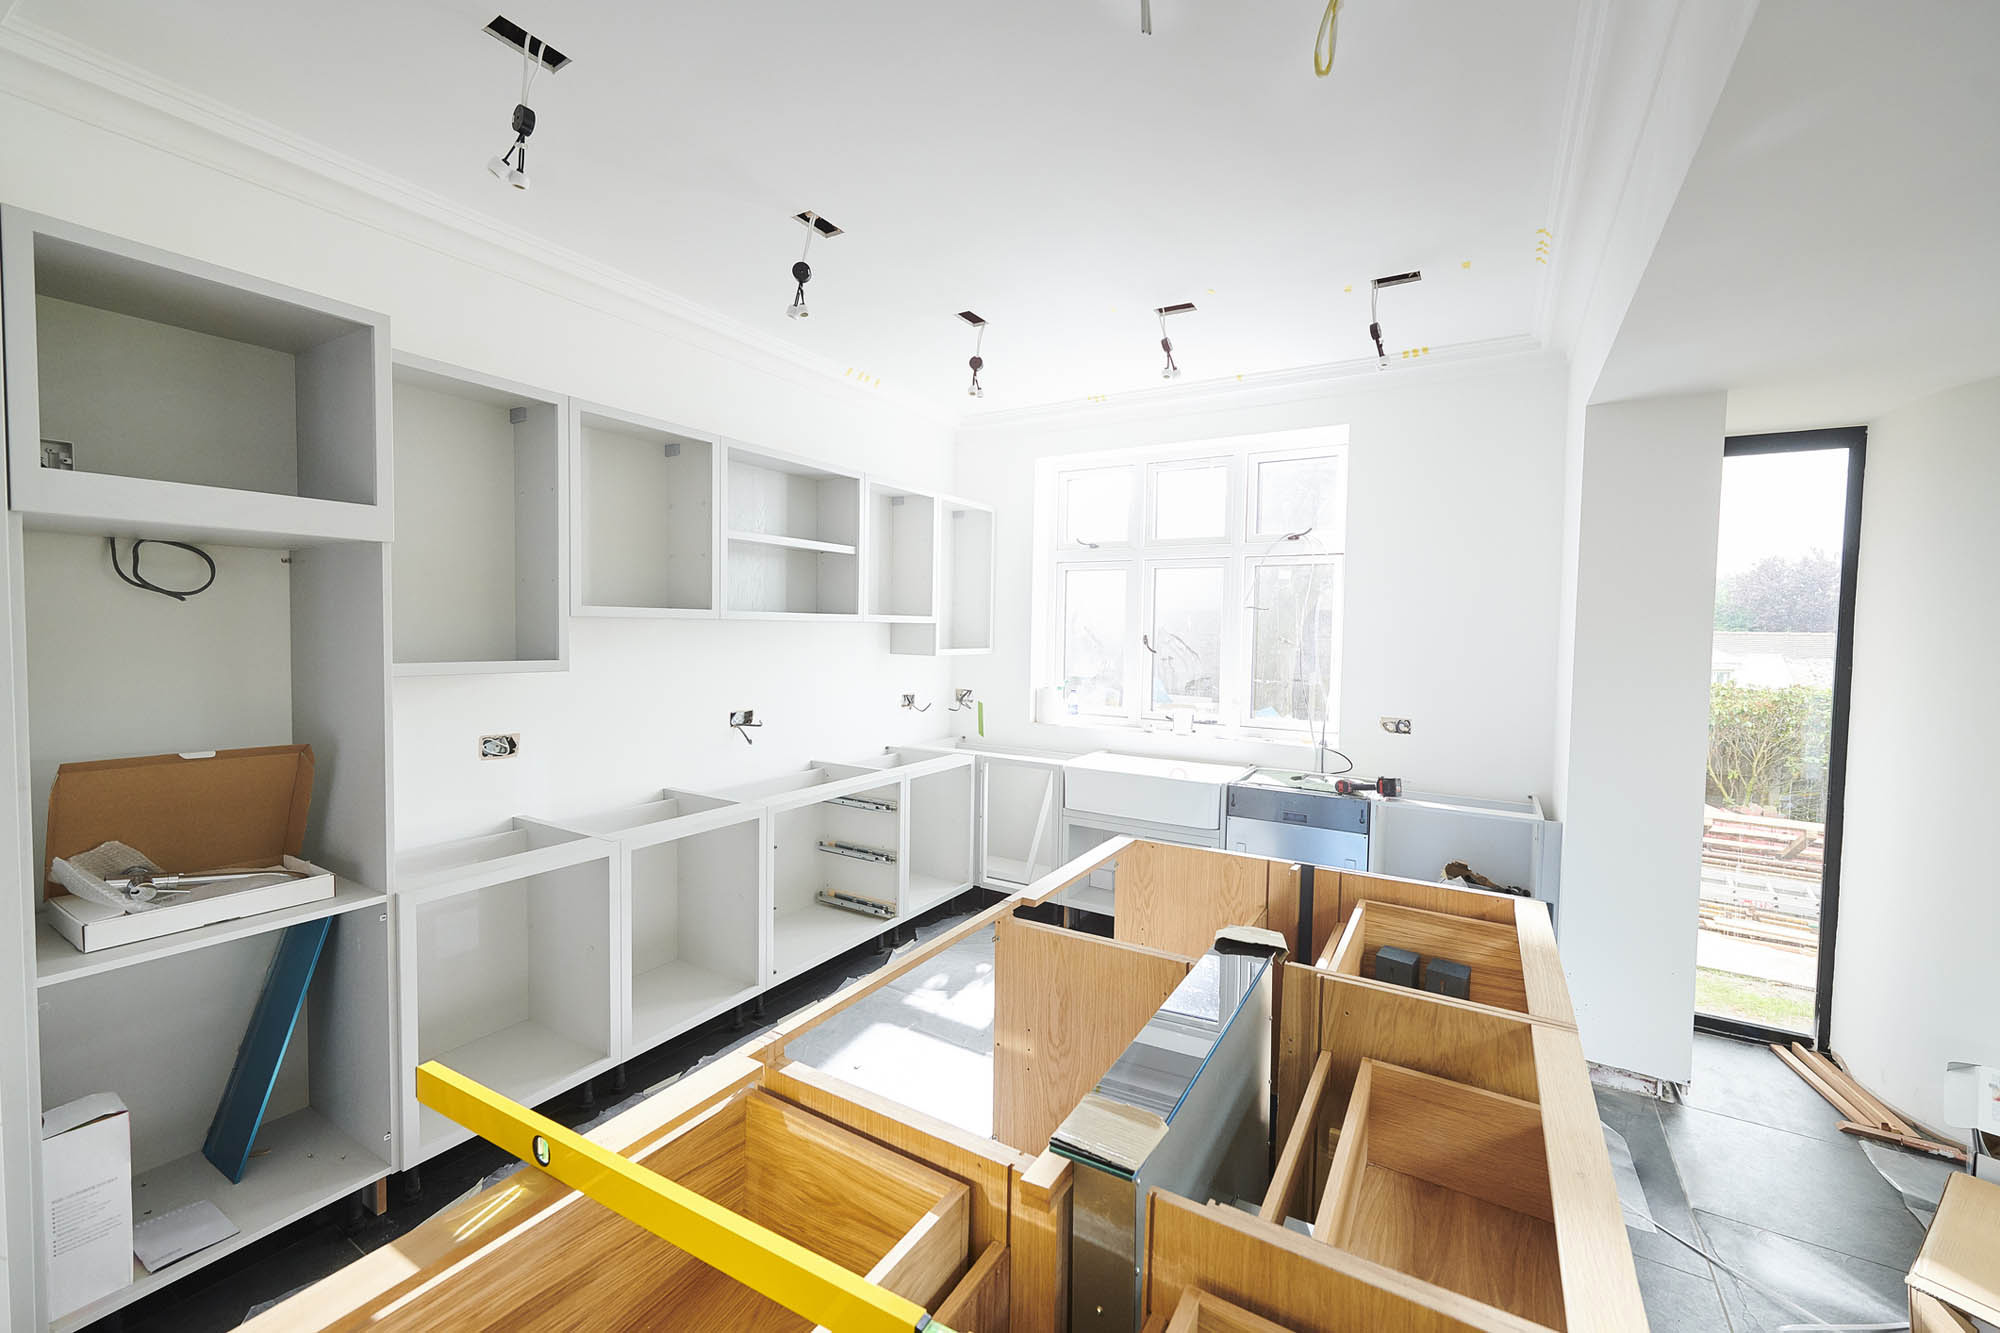 a modern kitchen partially finished, designed by a top interior designer